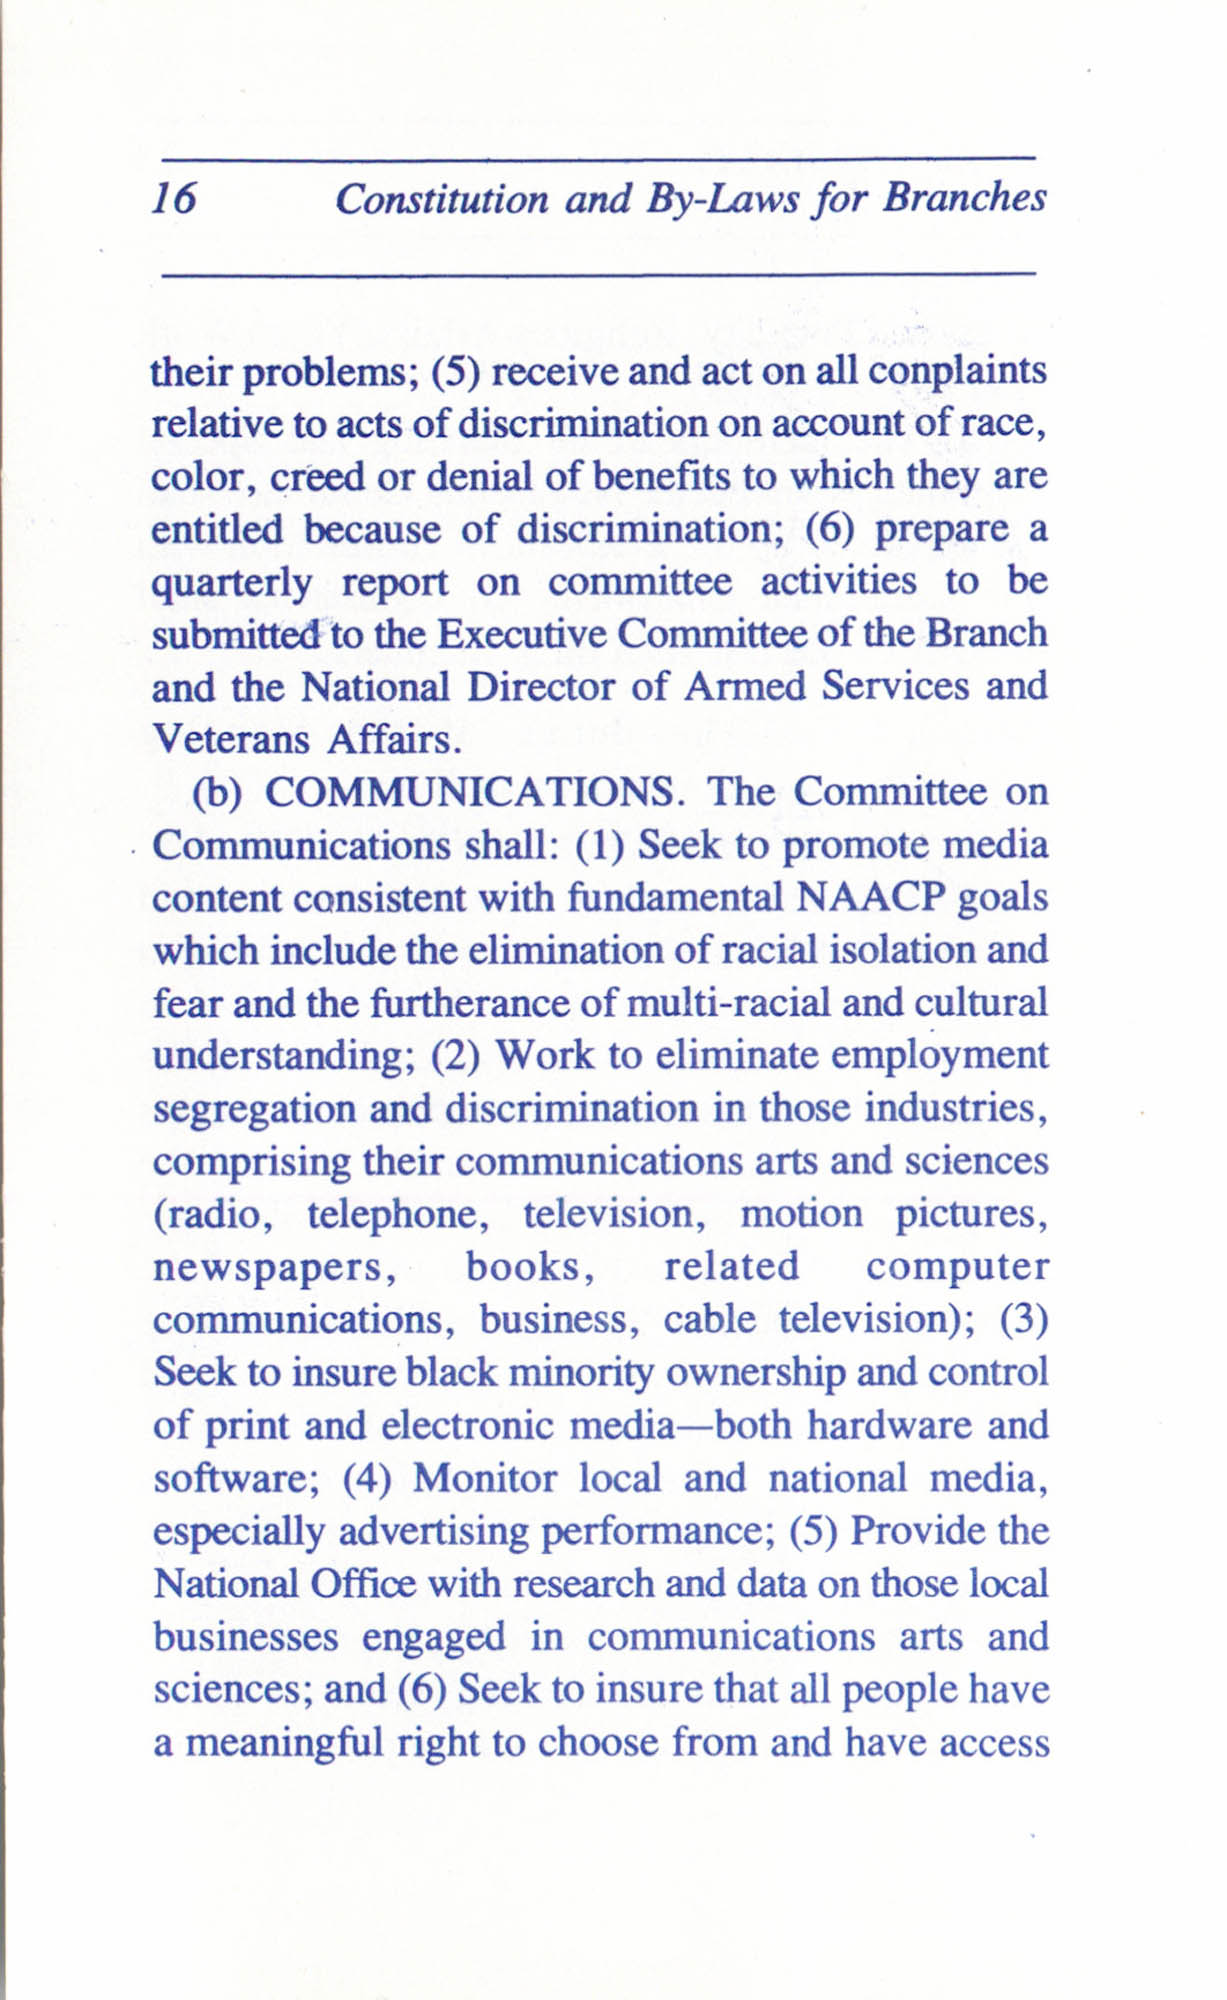 Constitution and By-Laws for Branches of the NAACP, June 1993, Page 16